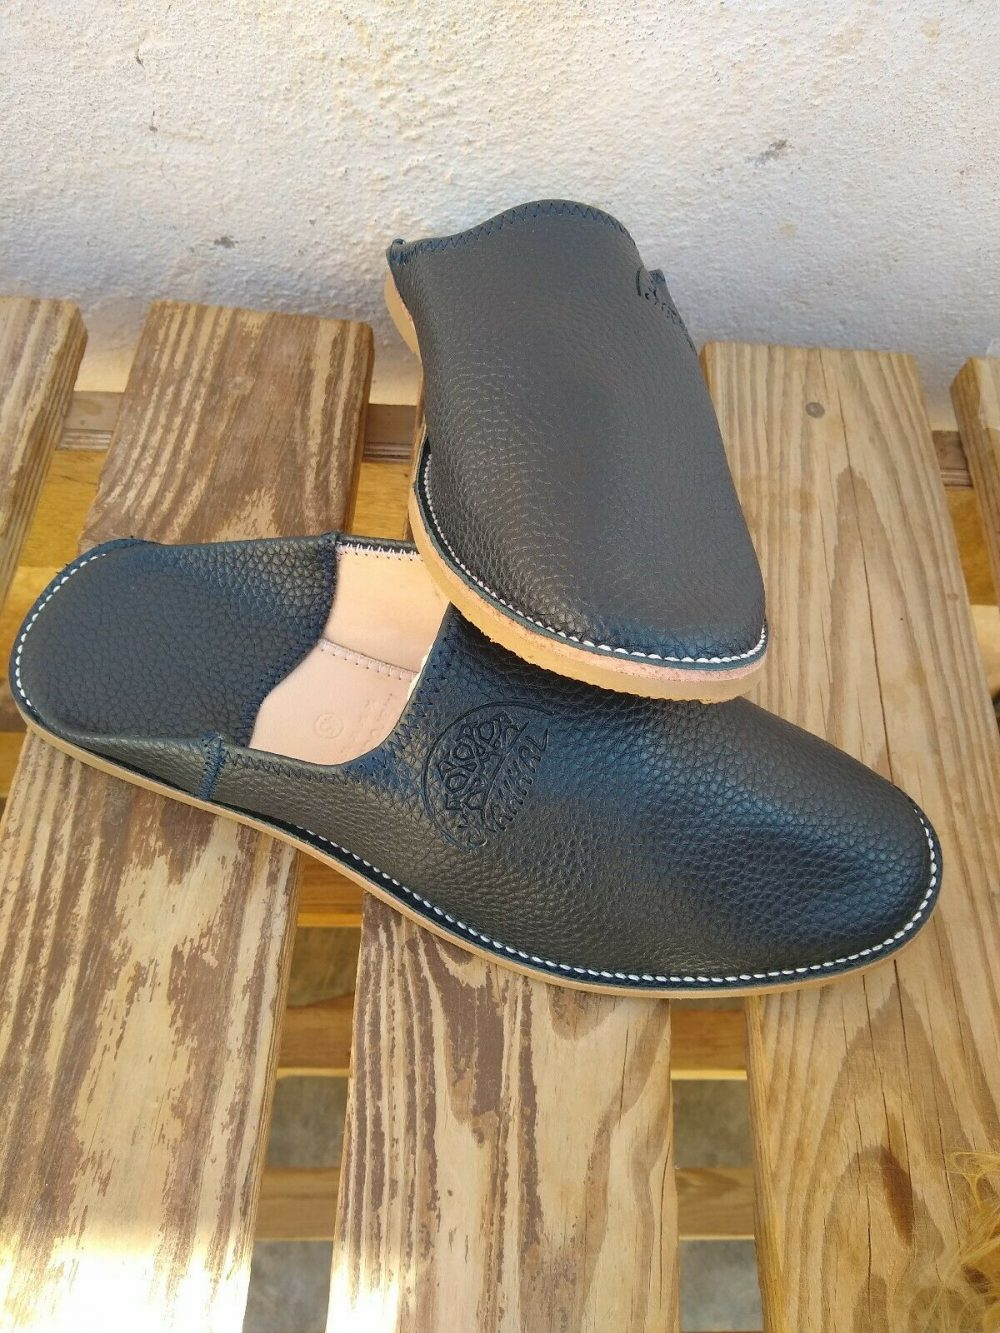 Authentic Handmade Moroccan Leather Slippers Babouche UK sizes 4-11 available